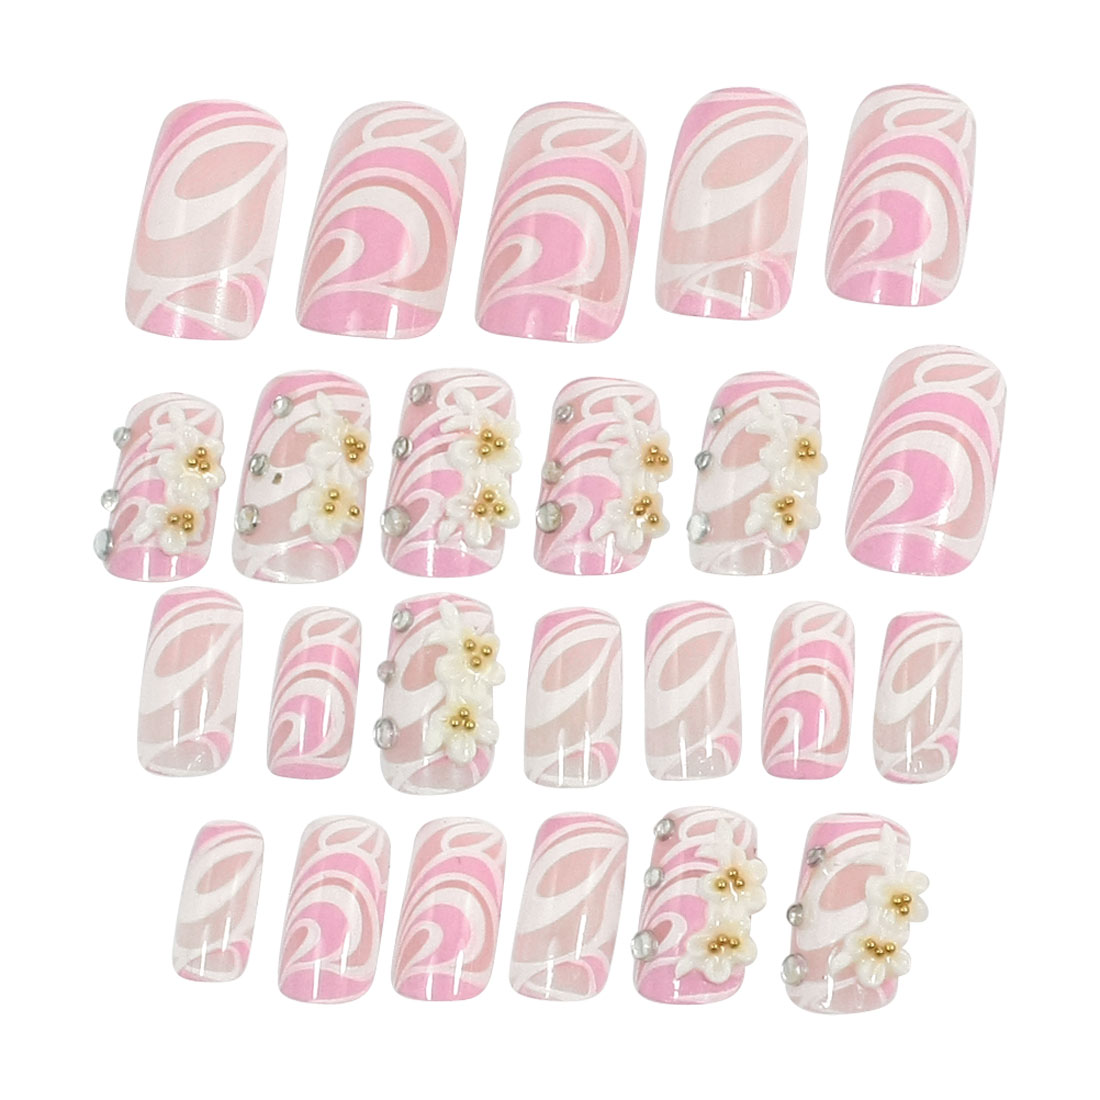 24 Pcs Rhinestone Flower Decor Pink White Plastic Self-Adhesive False Nails Tips for Woman